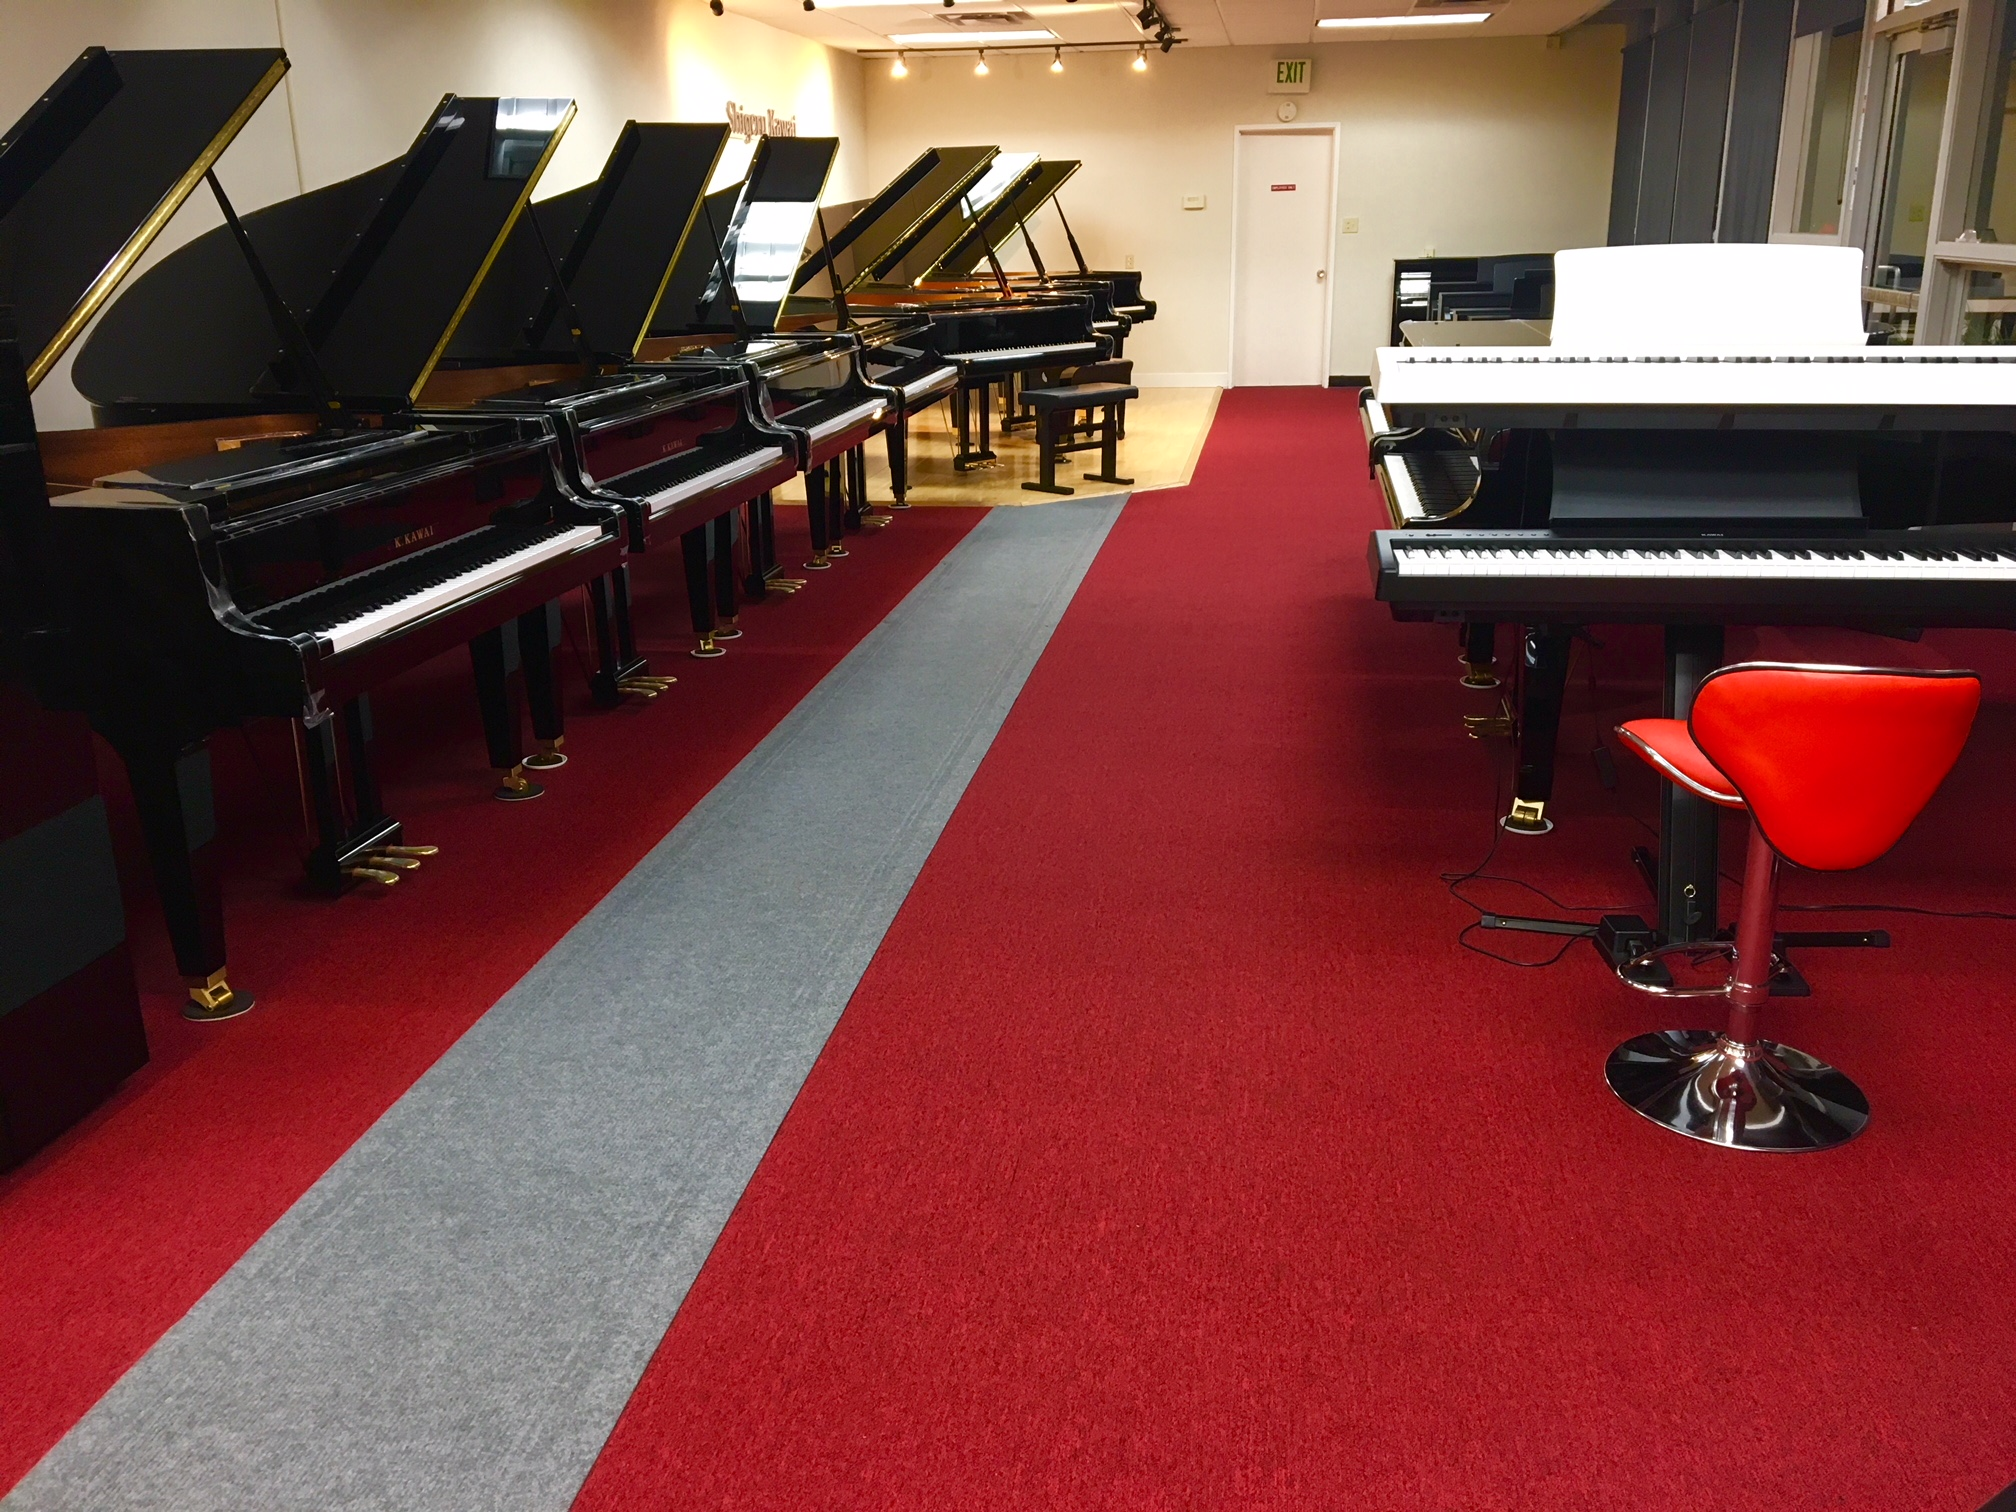 Our annual piano sale in progress